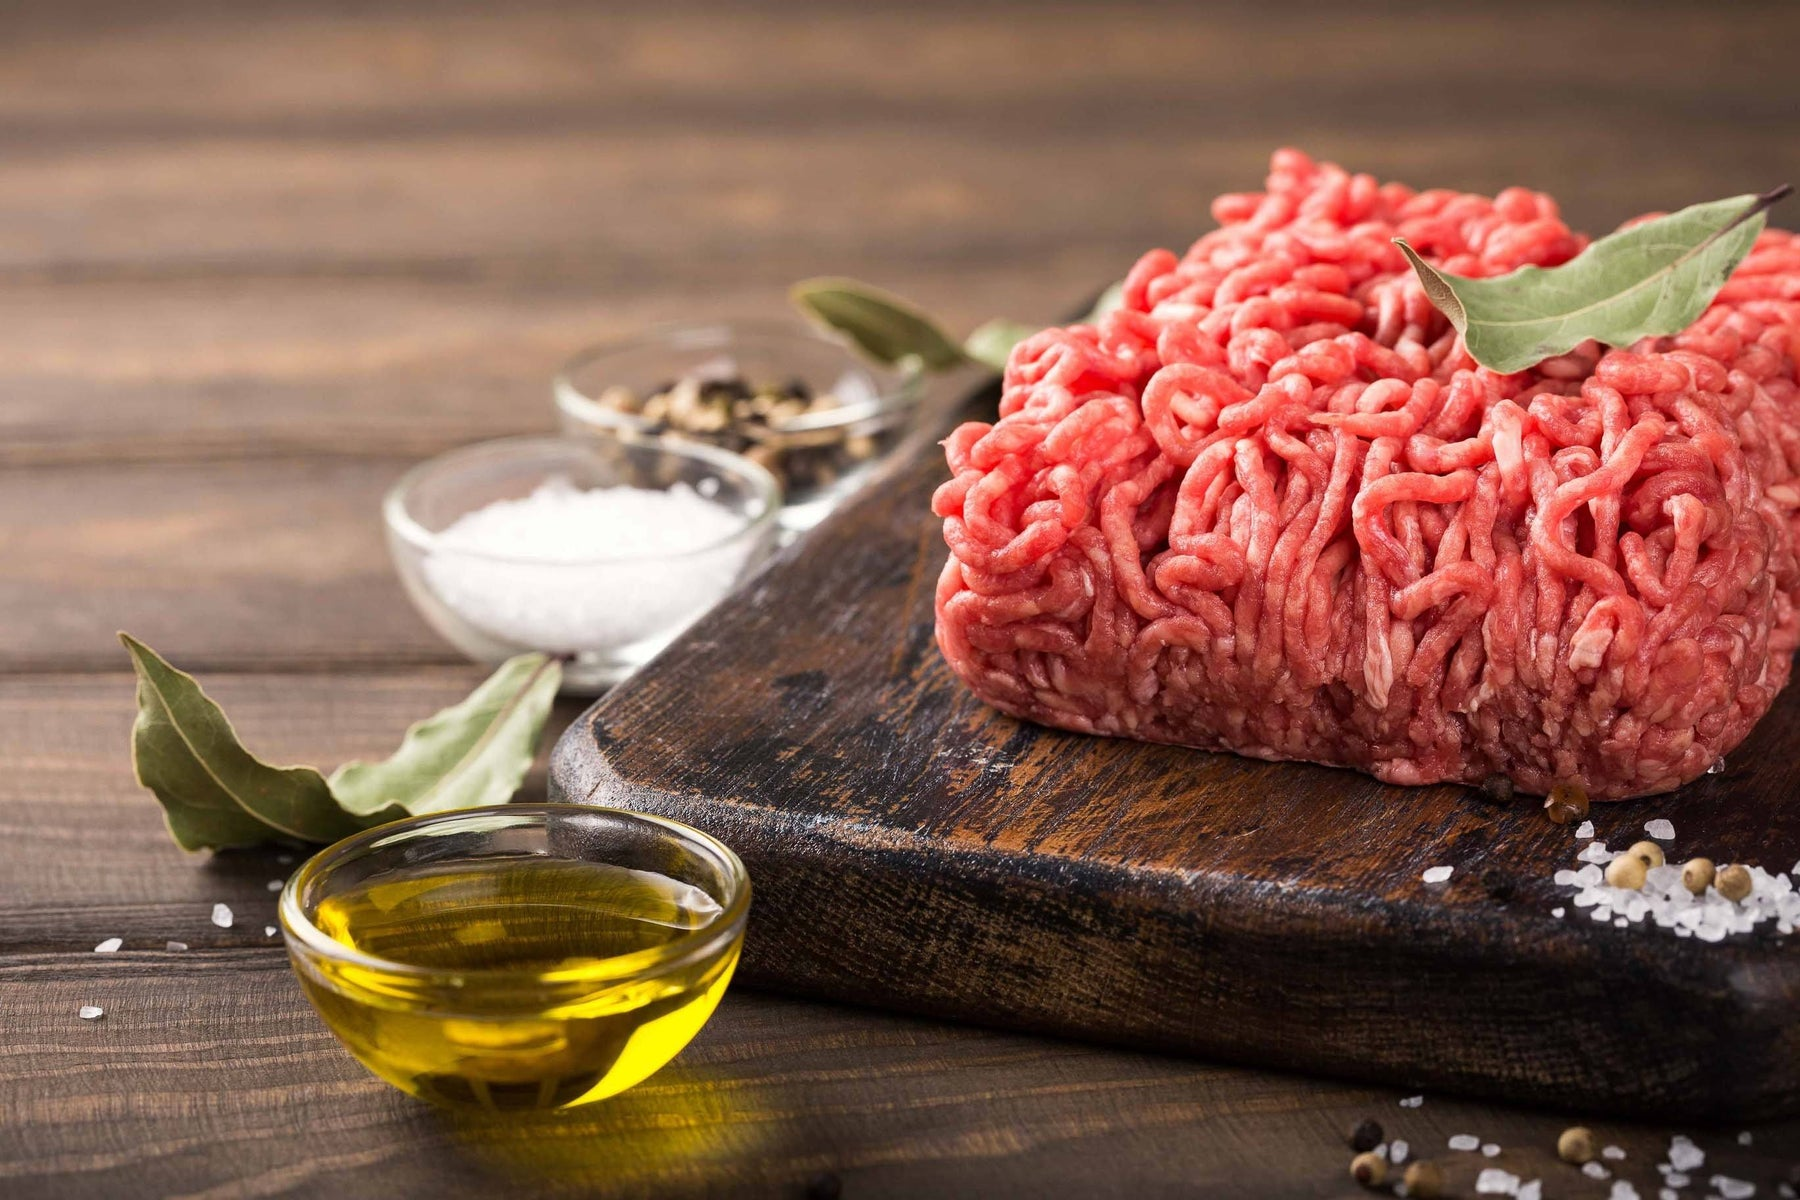 Halal Prime Beef Ground/ Mince - WeGotMeat- Columbus Ohio Halal Meat Delivery